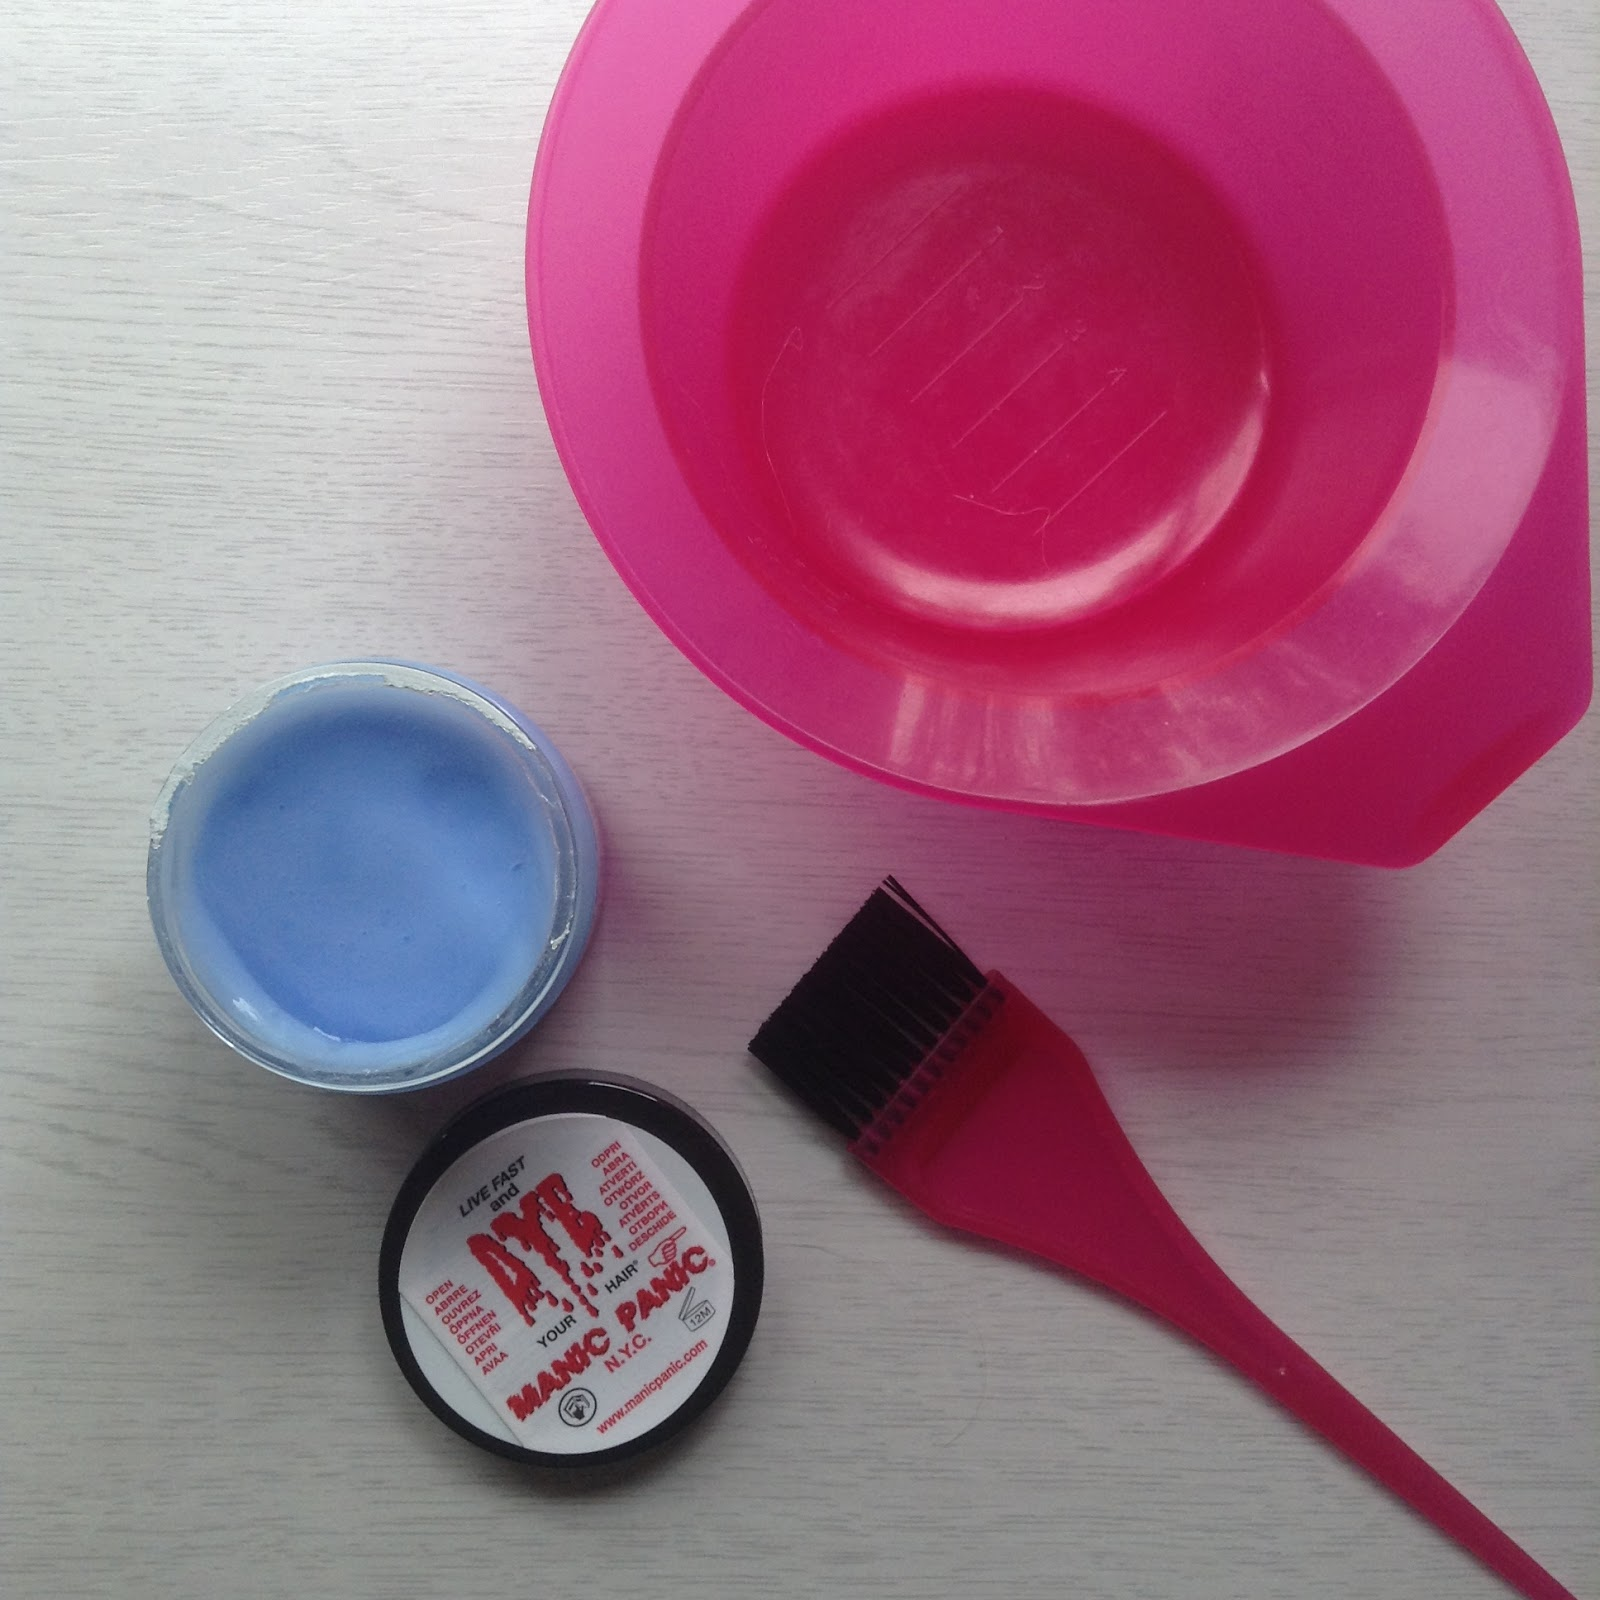 Where To Buy Unnatural Hair Dye In Japan Candyflossoverkill